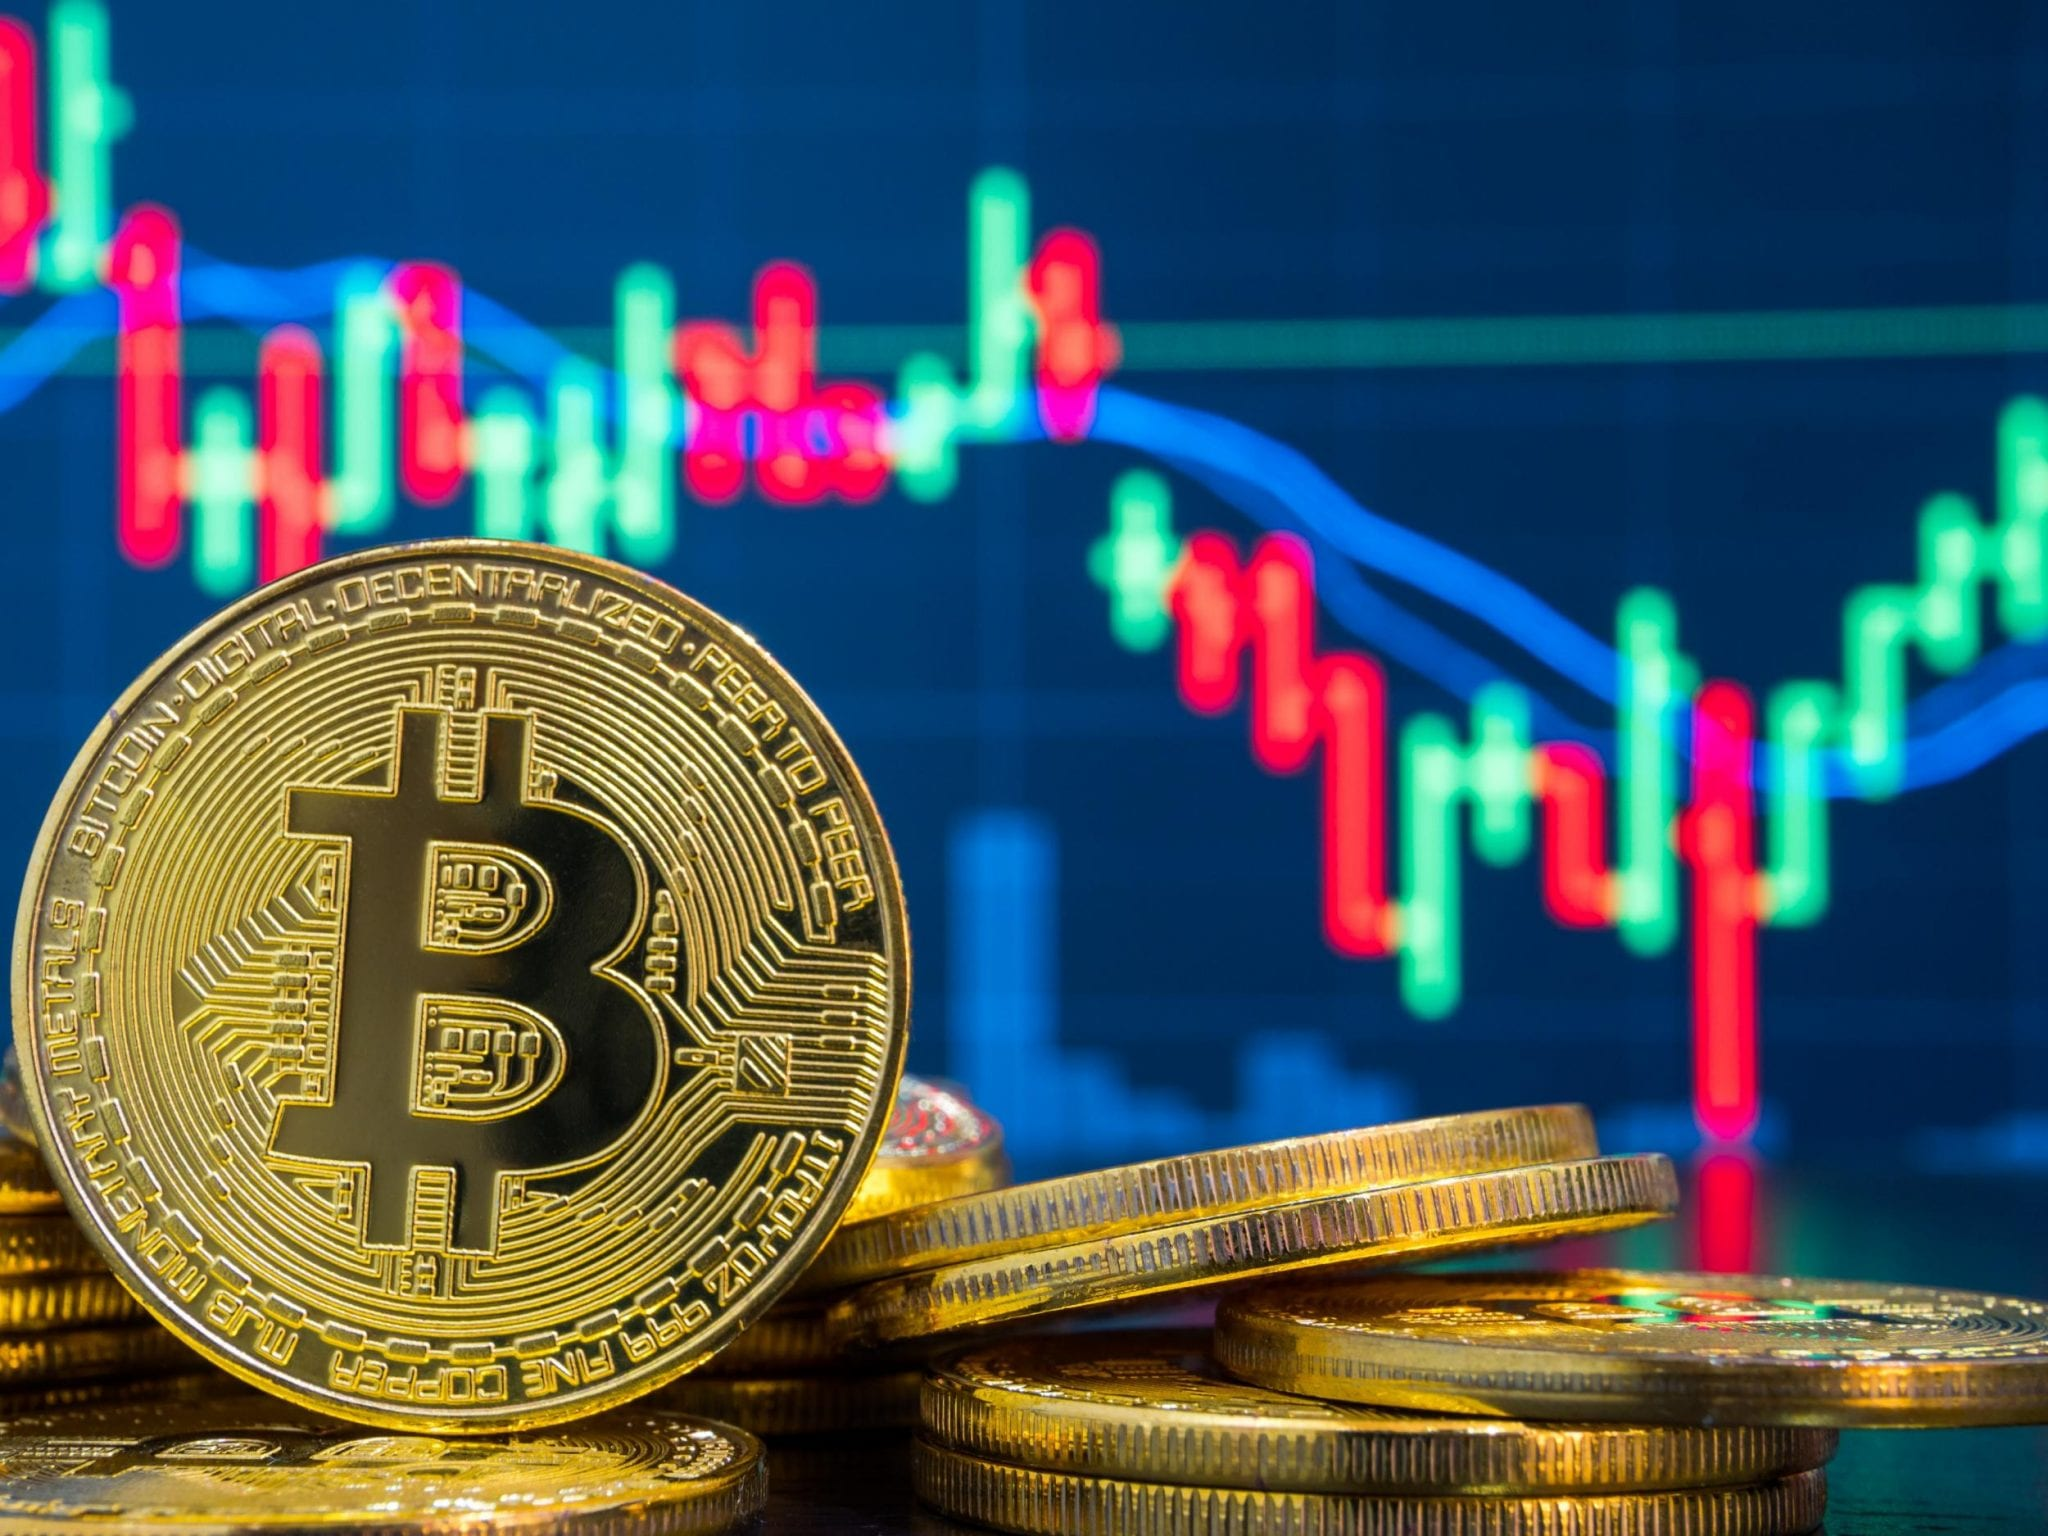 bitcoin price latest 2019 - New Theory On Bitcoin (BTC) Bulls Goes Viral - A Surge Towards Previous Highs Is Possible